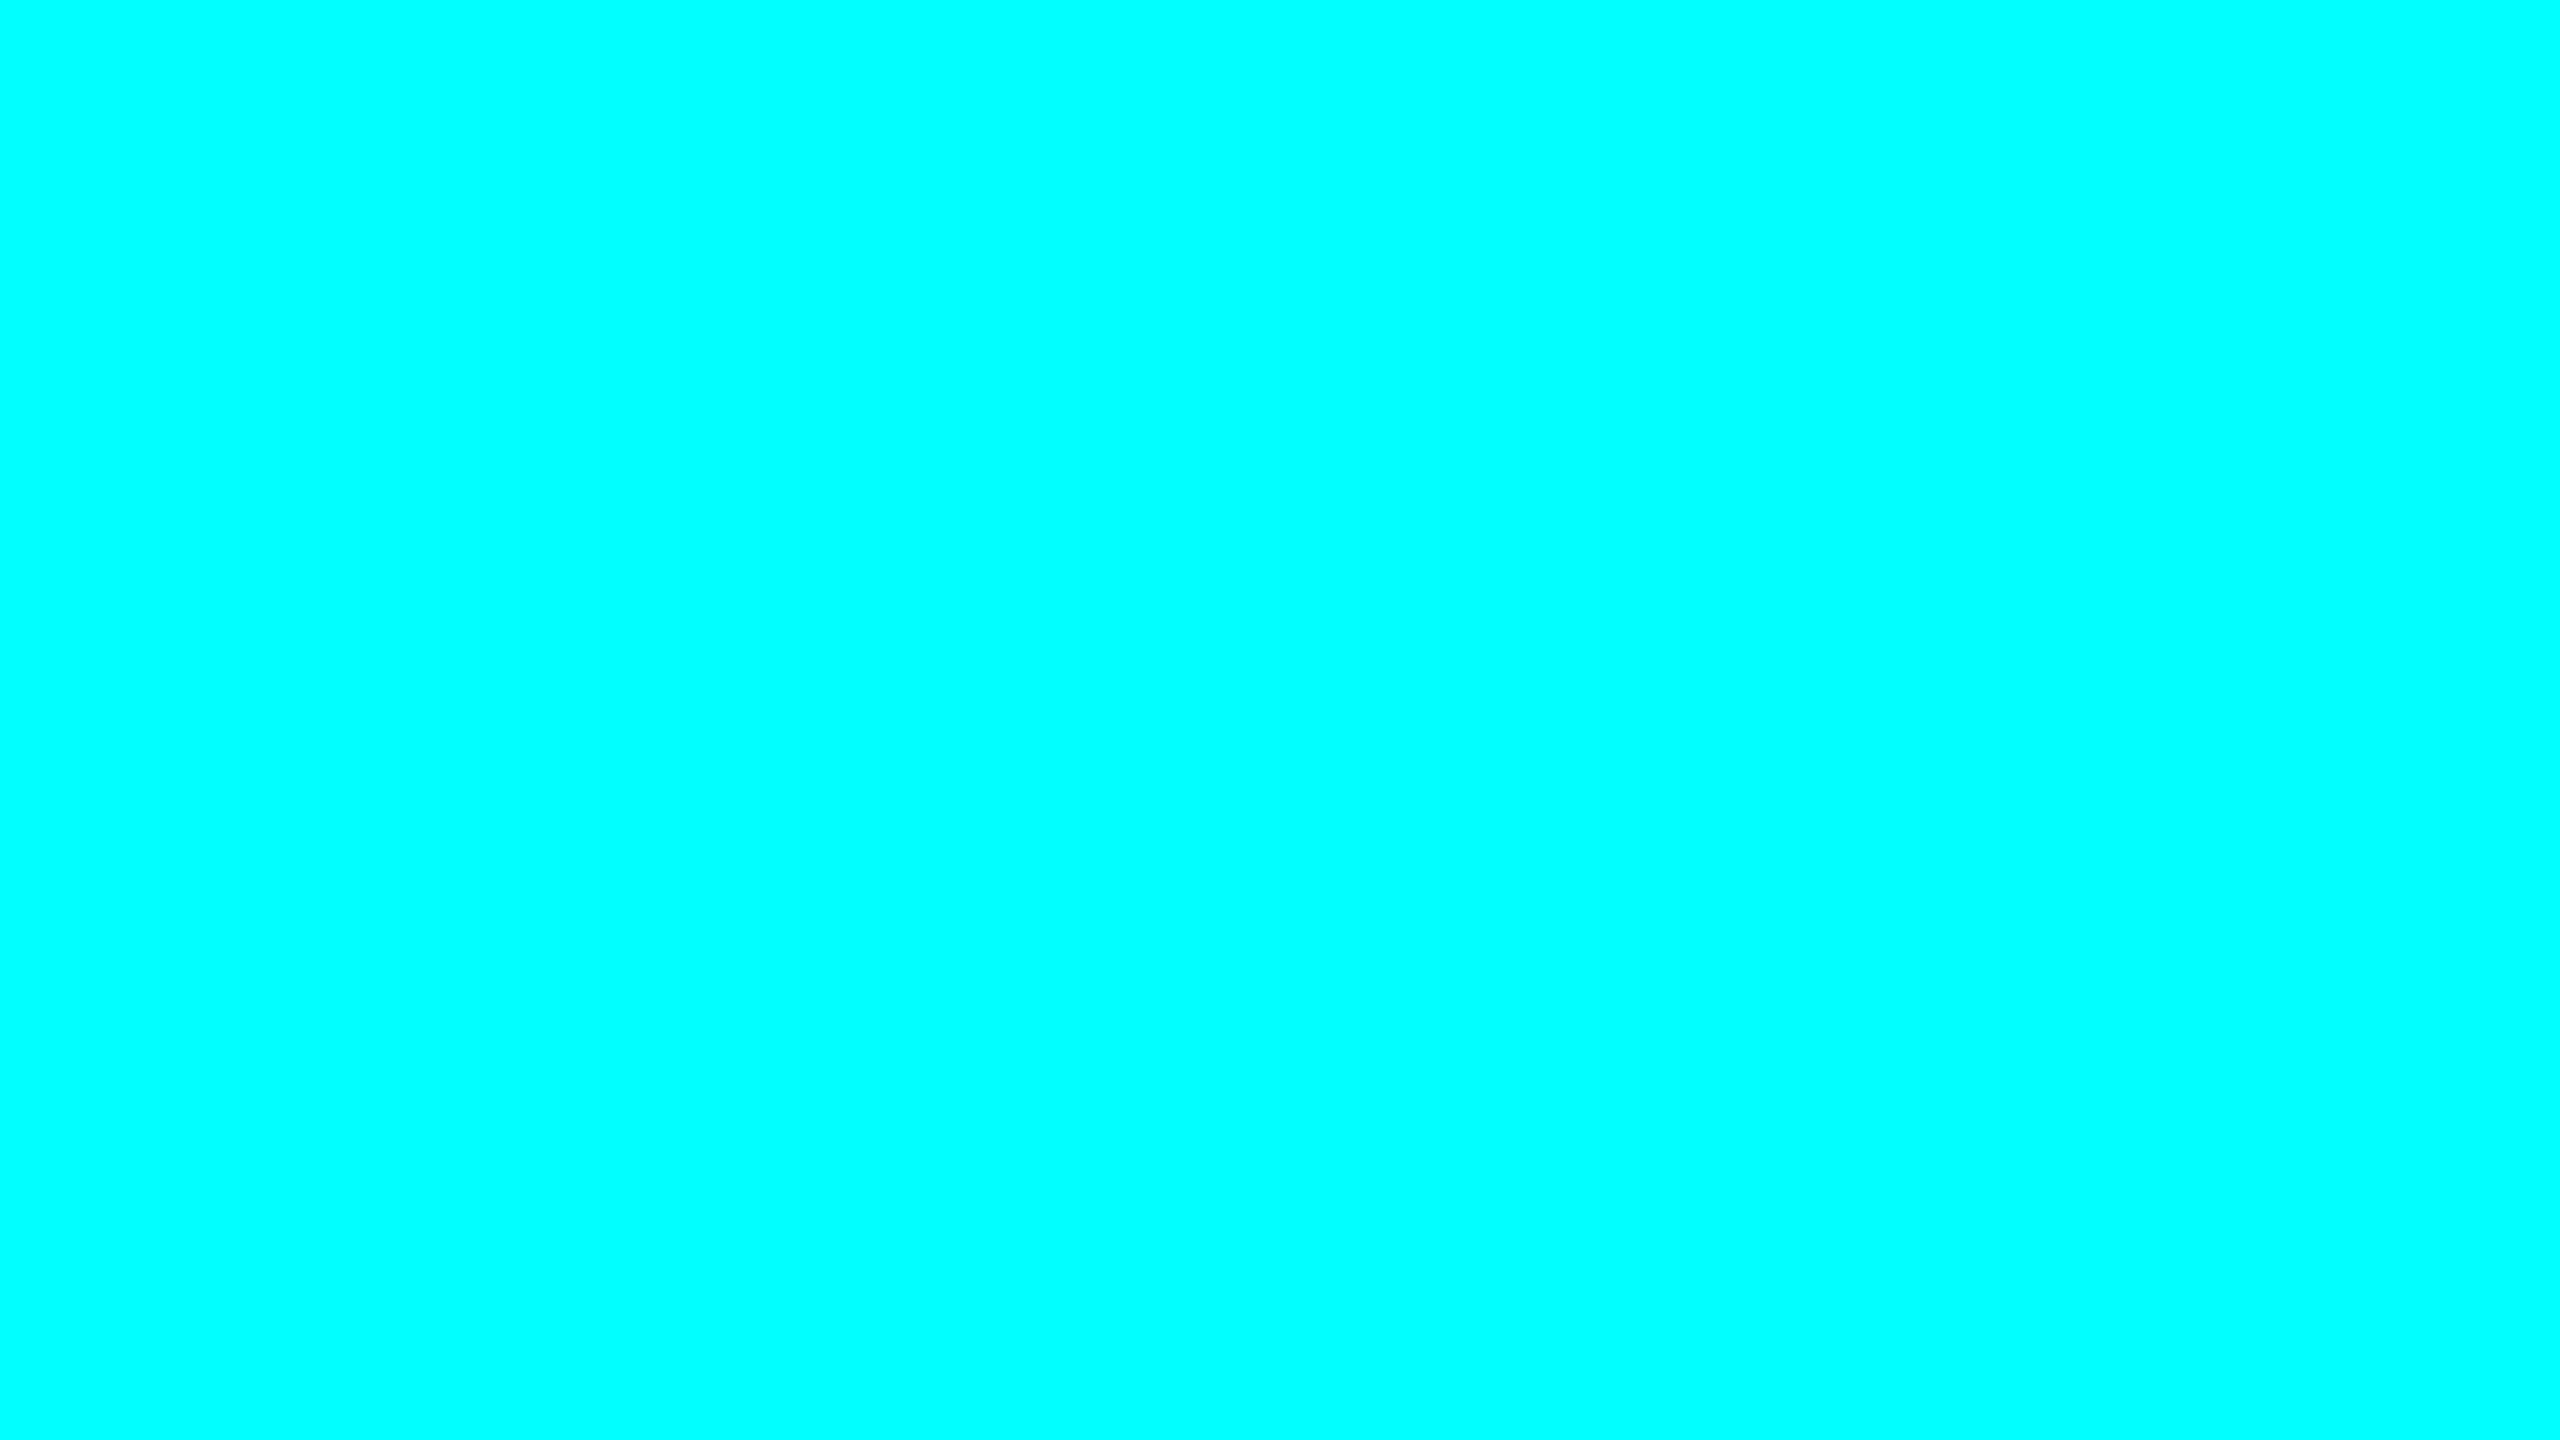 2560x1440 Cyan Solid Color Background